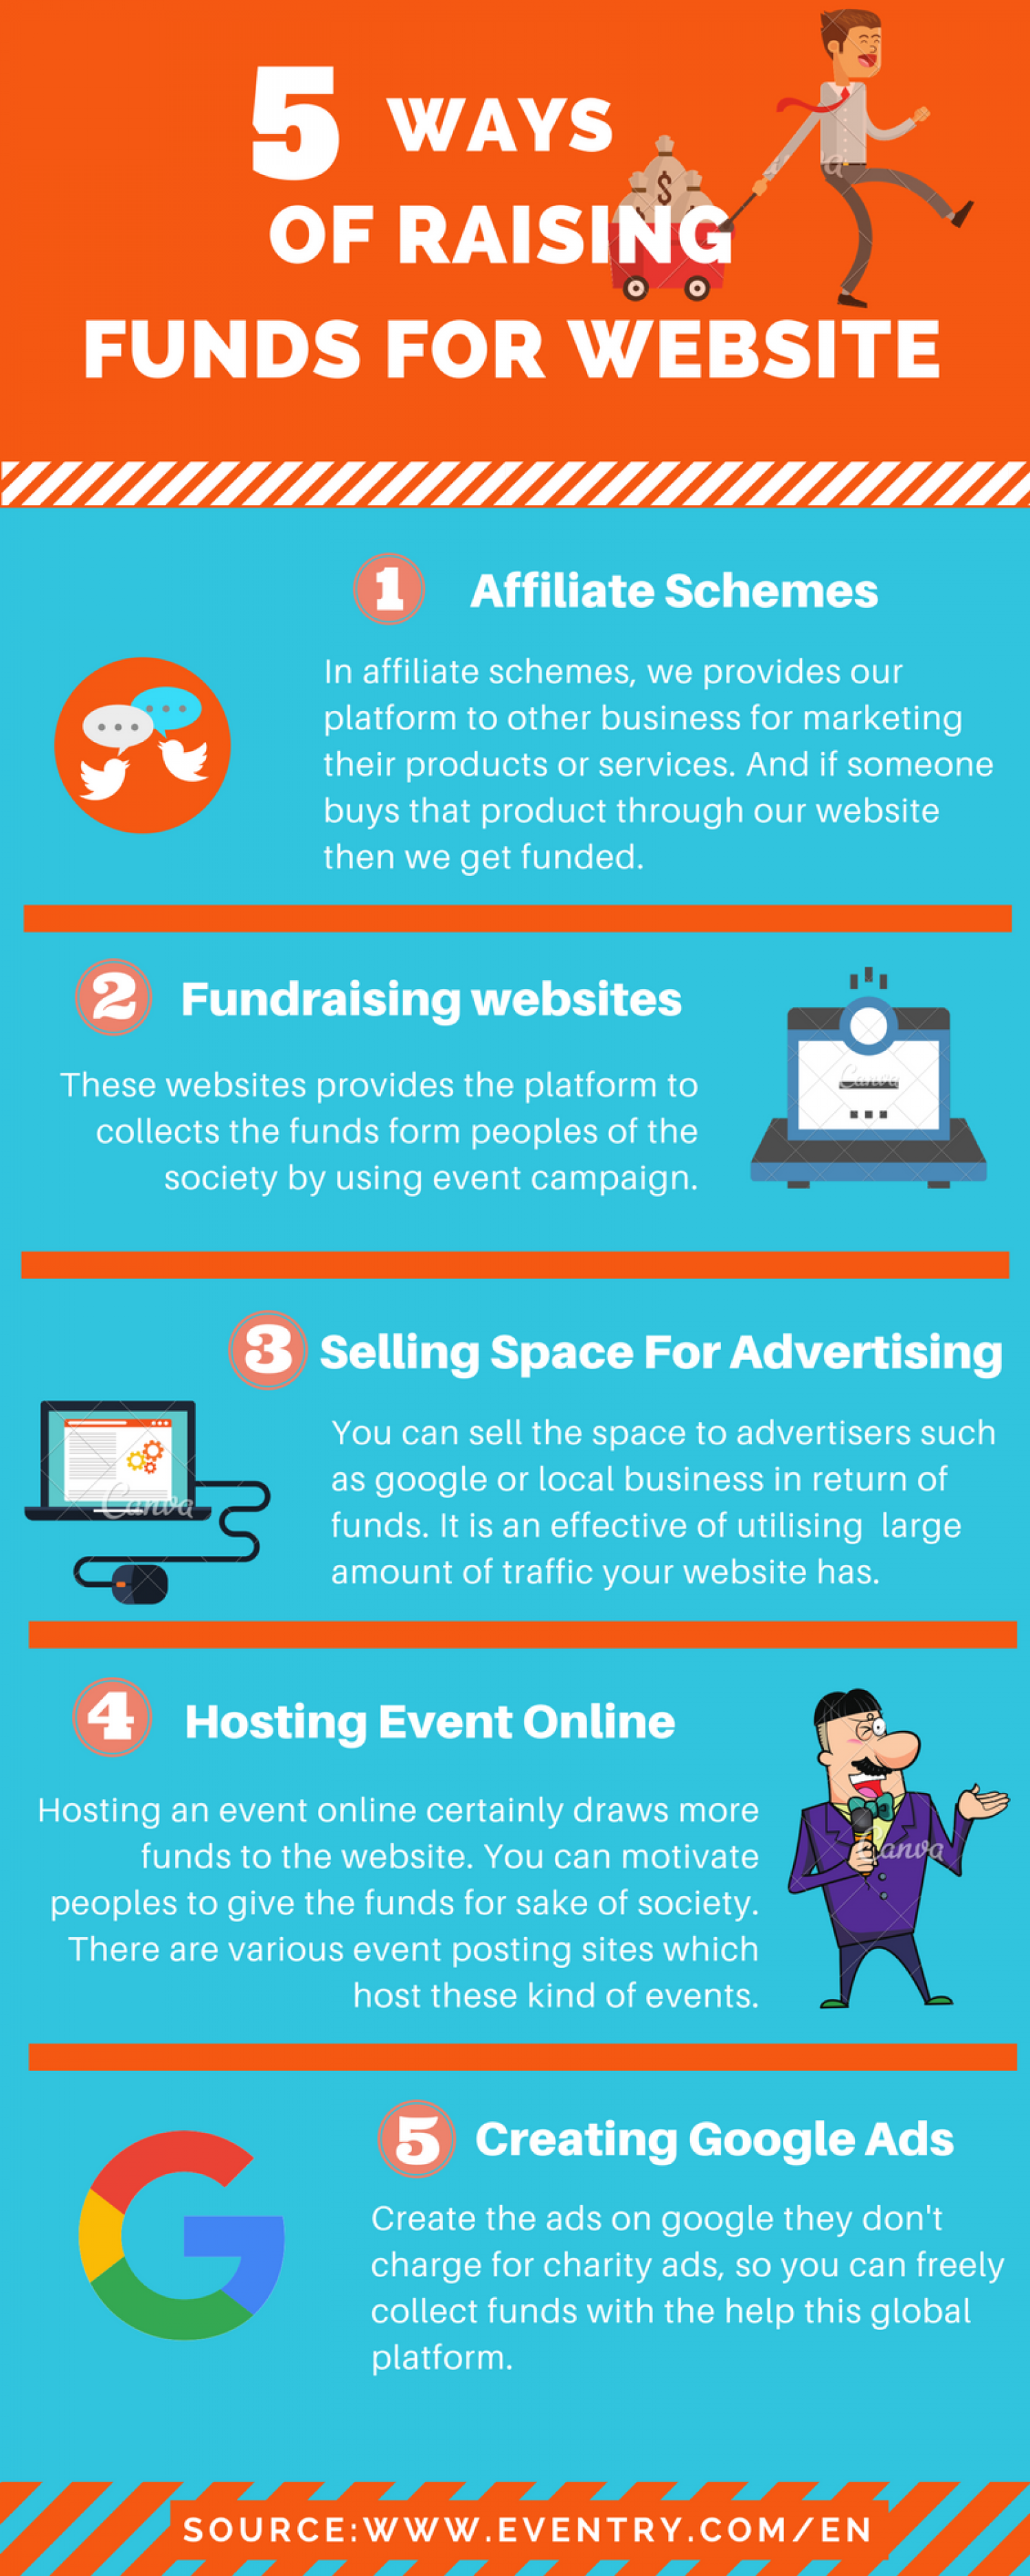 5 Ways Of Raising Funds For Website. Infographic